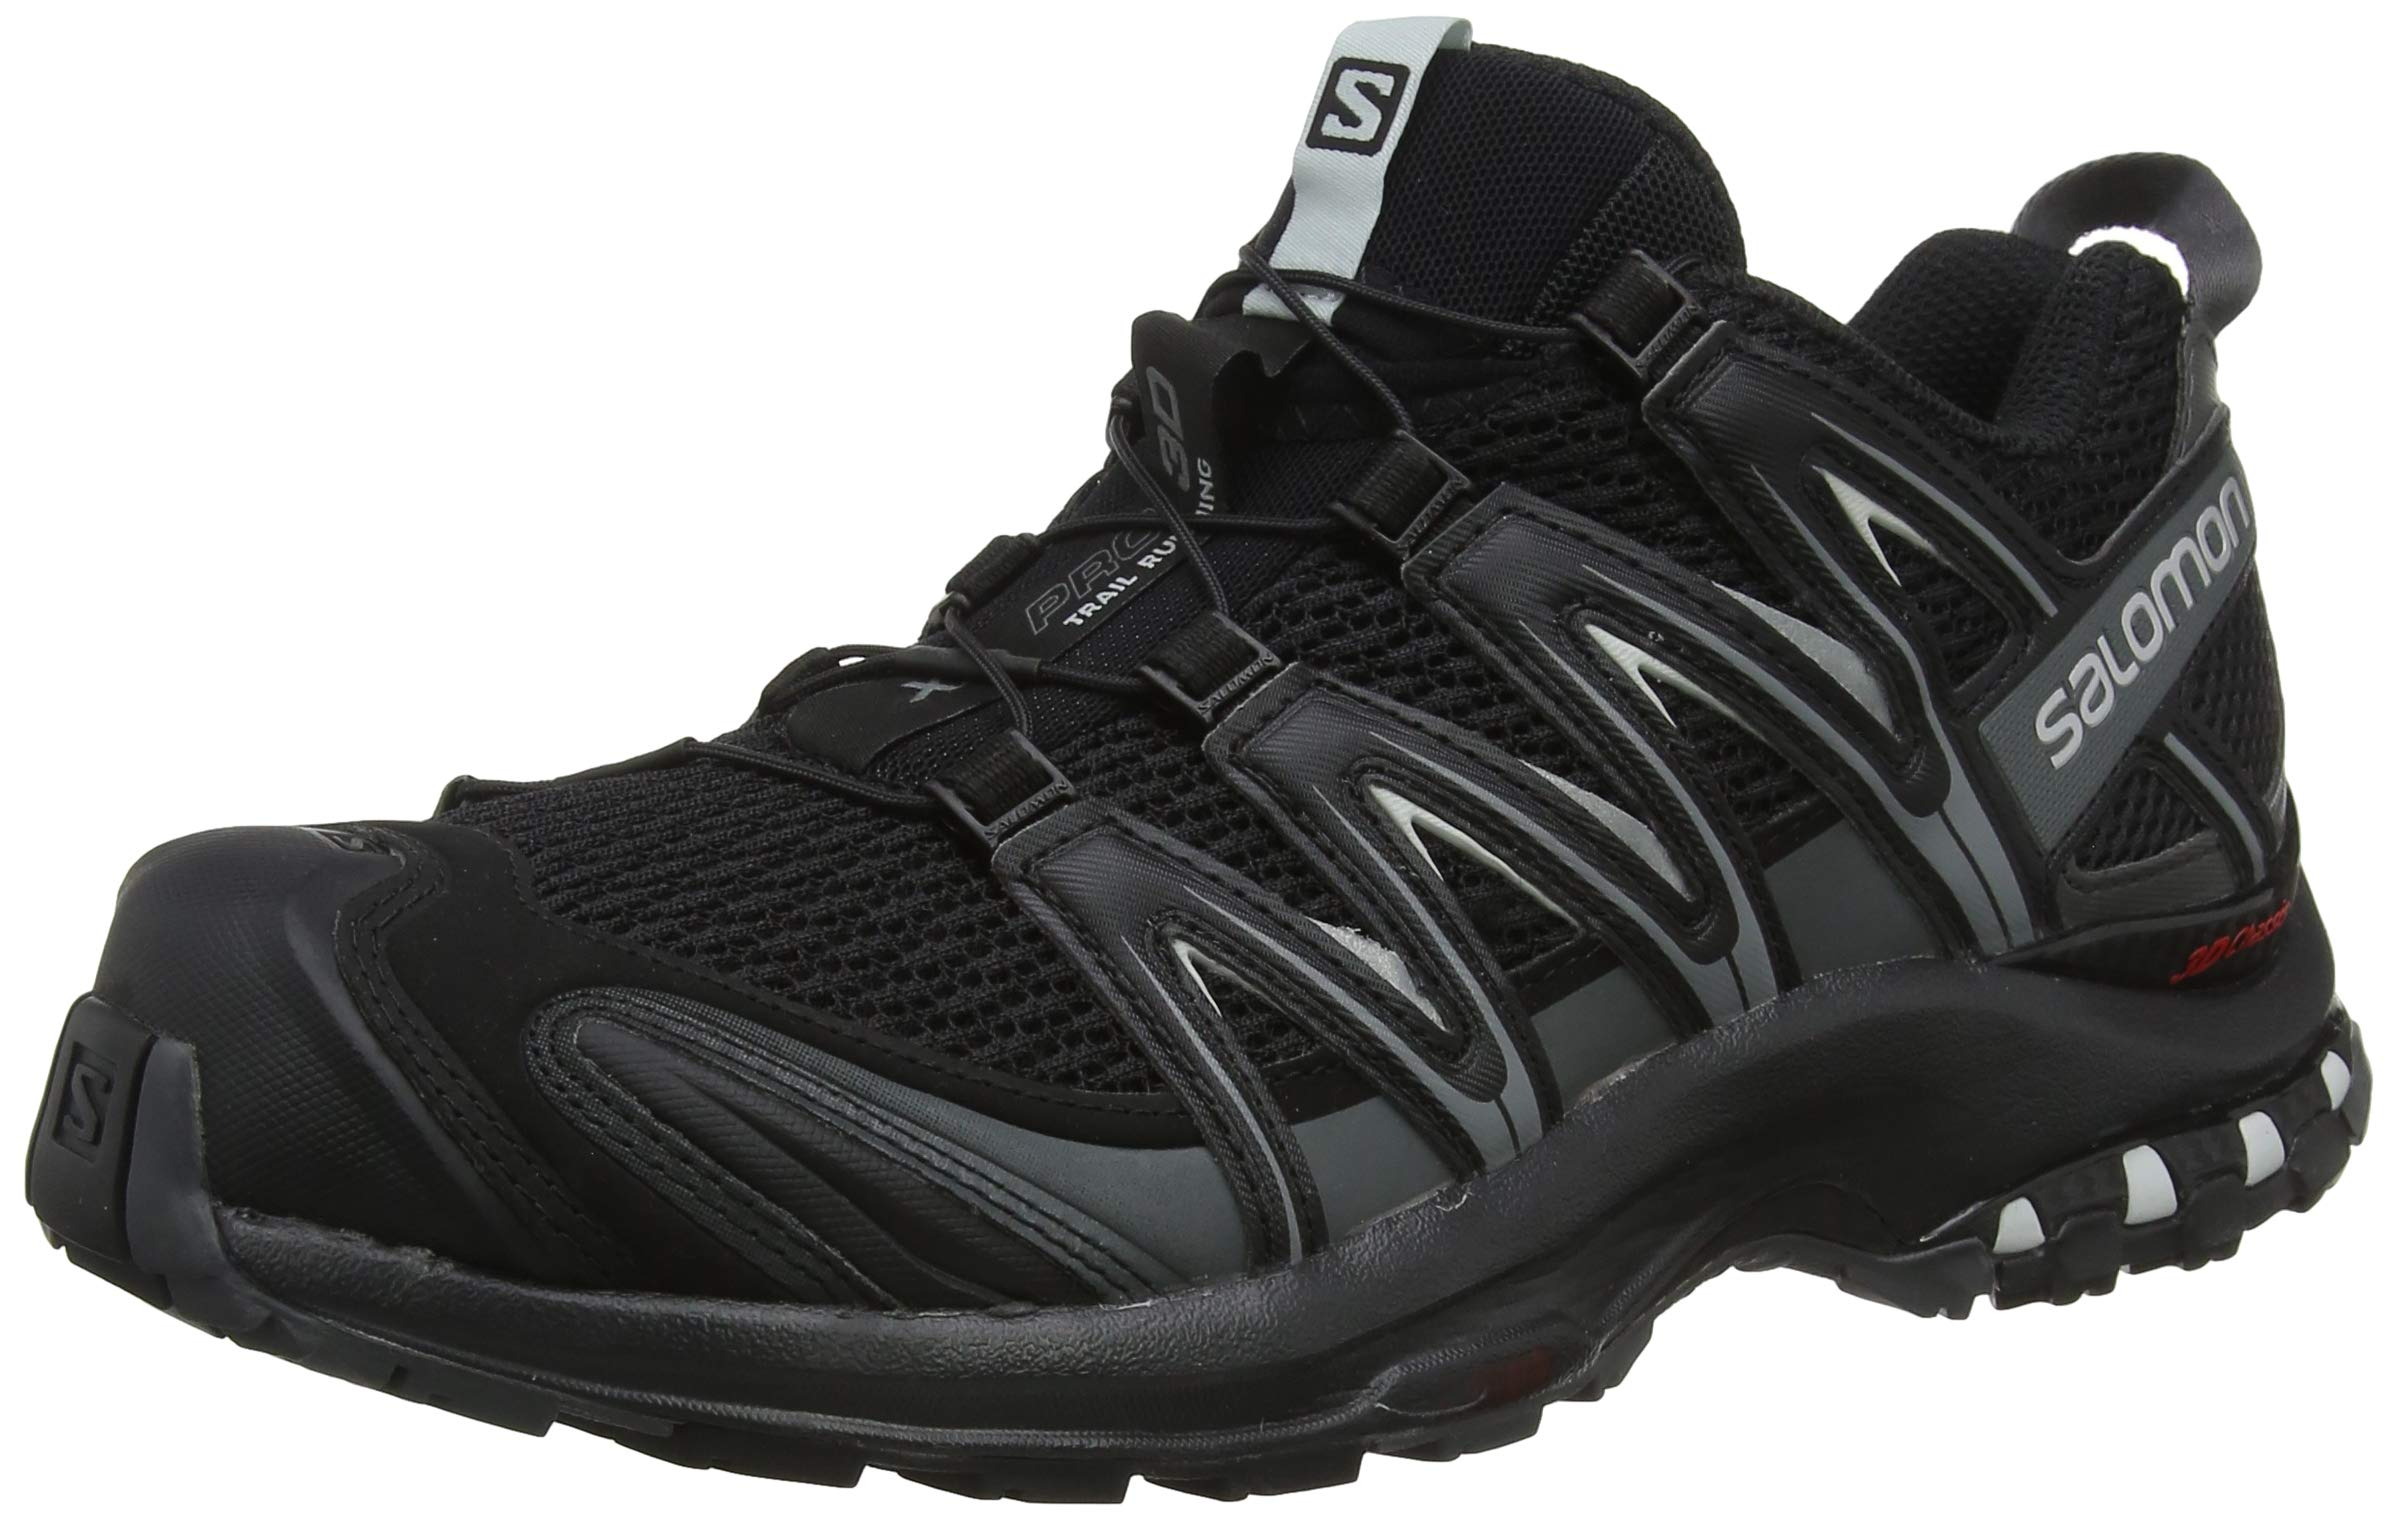 Salomon Men's XA Pro 3D Trail Running Shoes, black, 11 M US by Salomon